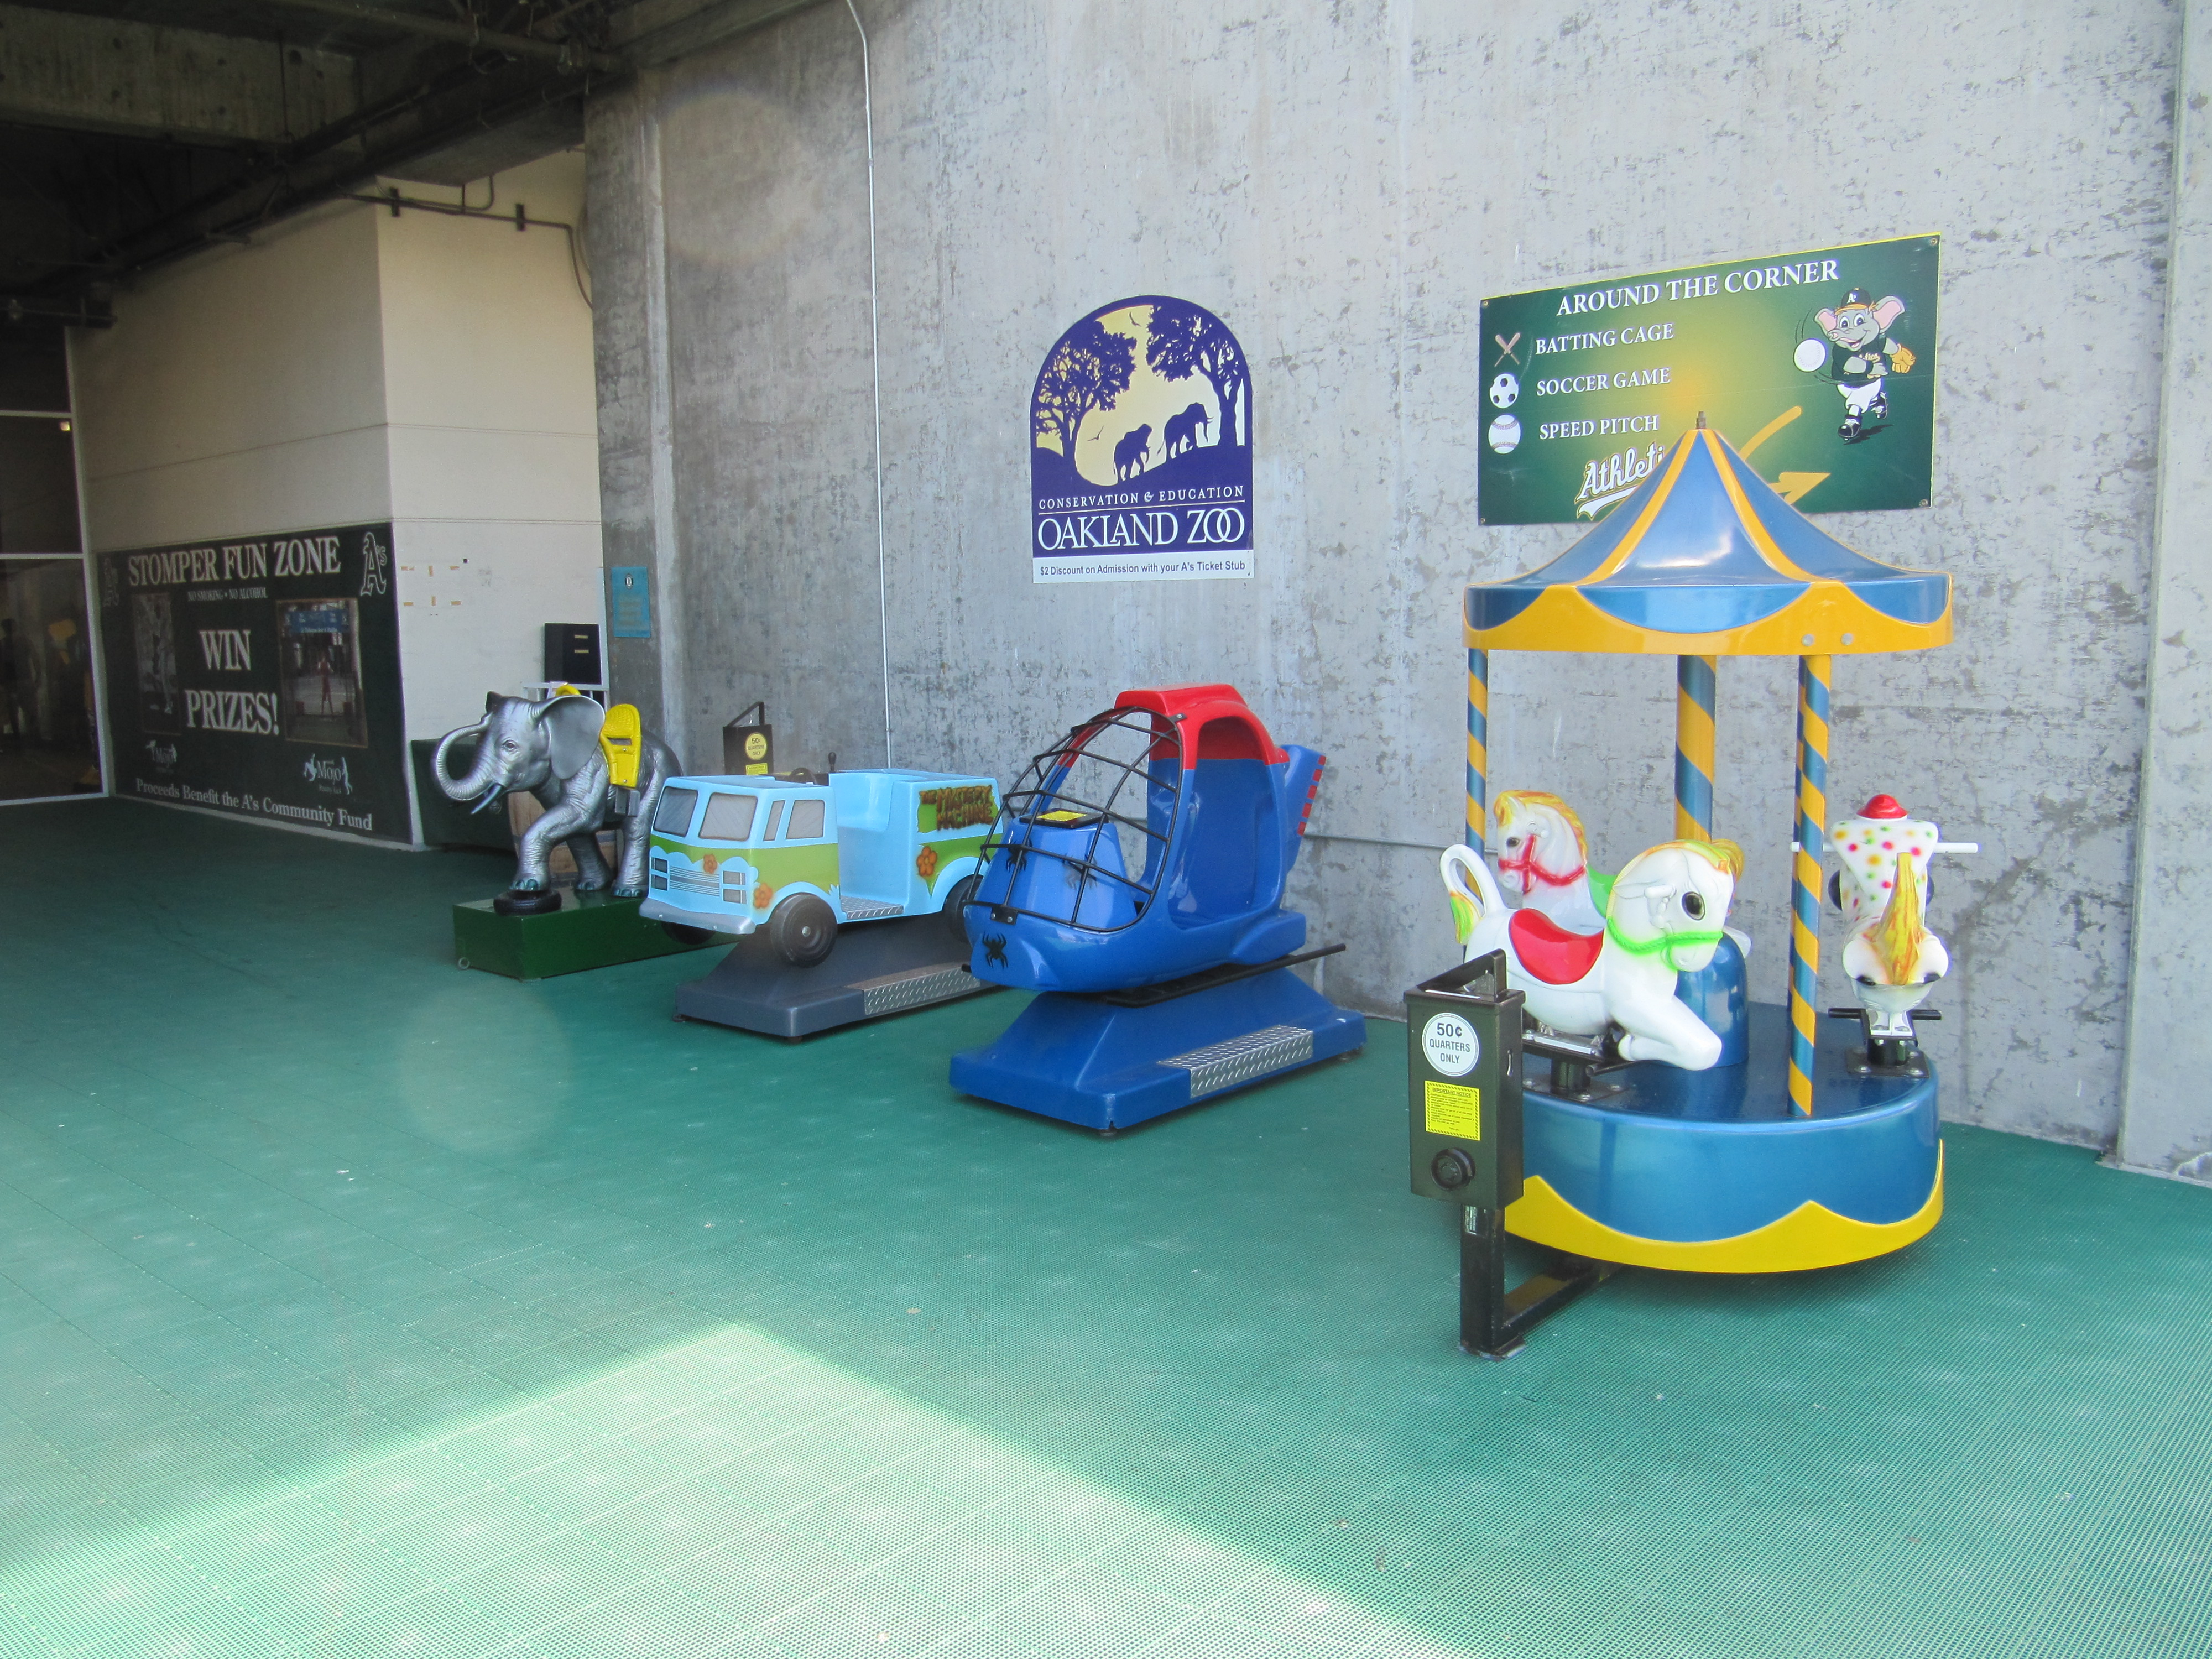 Stomper Fun Zone area at Oakland Coliseum